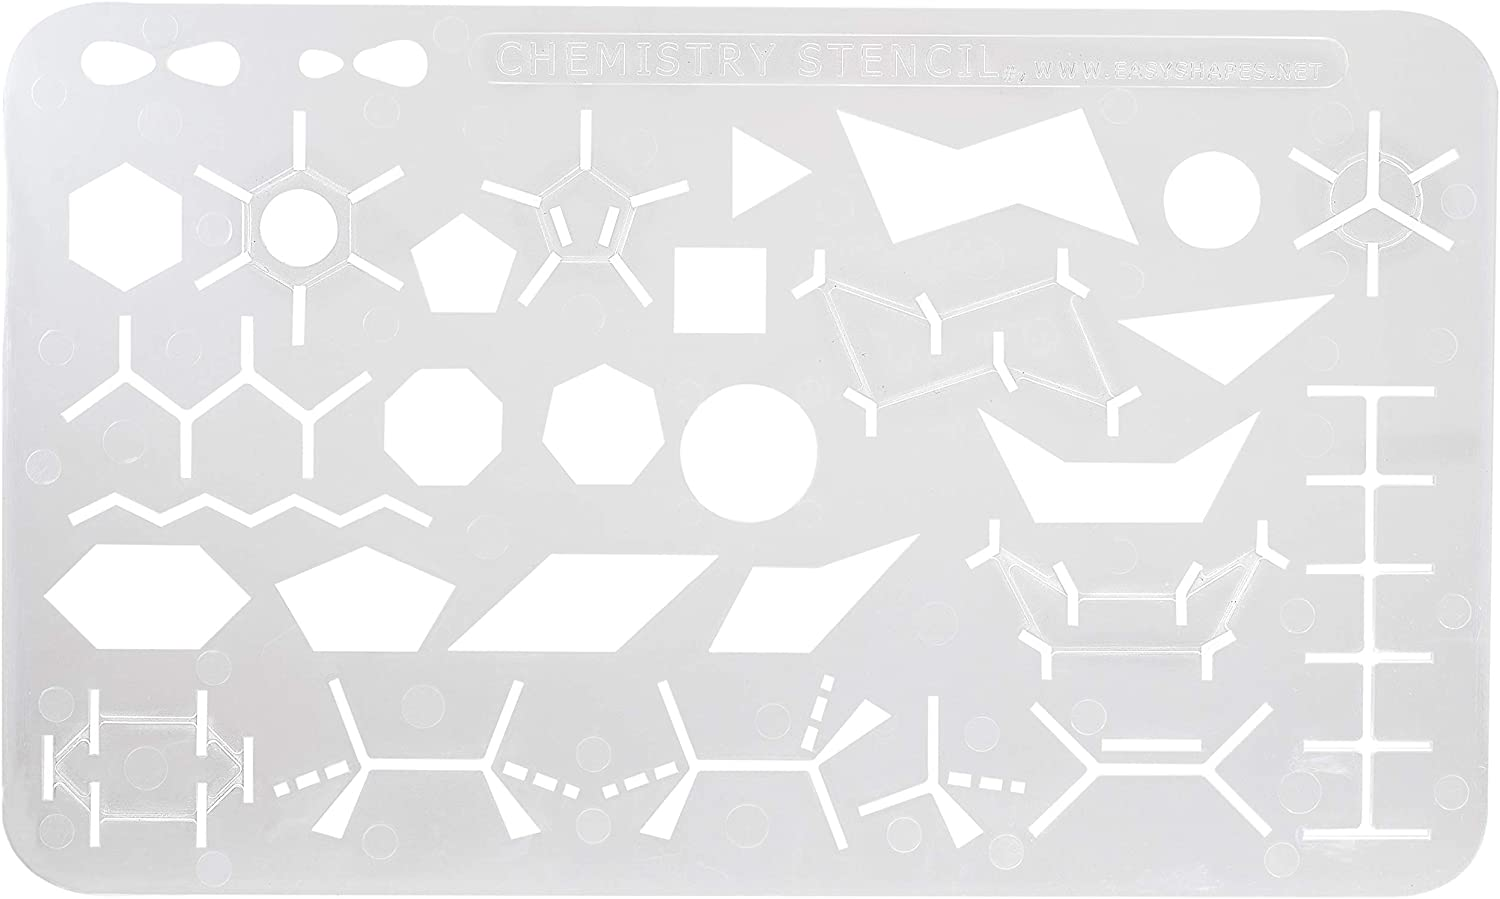 Organic Chemistry Stencil Drawing /& Drafting Template by Easyshapes Easyshapes